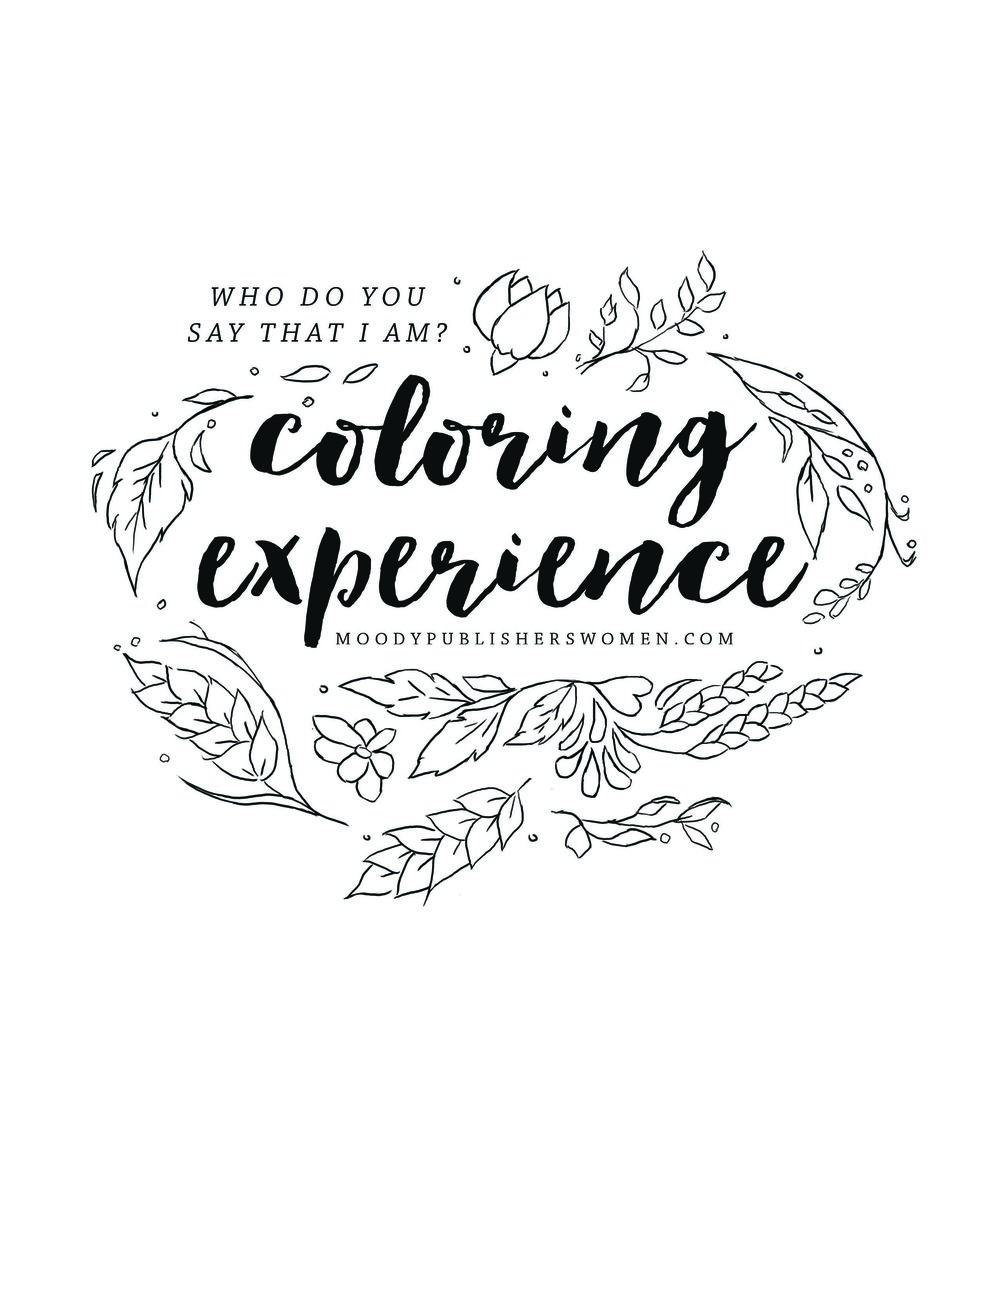 Art Direction: Who Do You Say That I Am? Coloring Pages